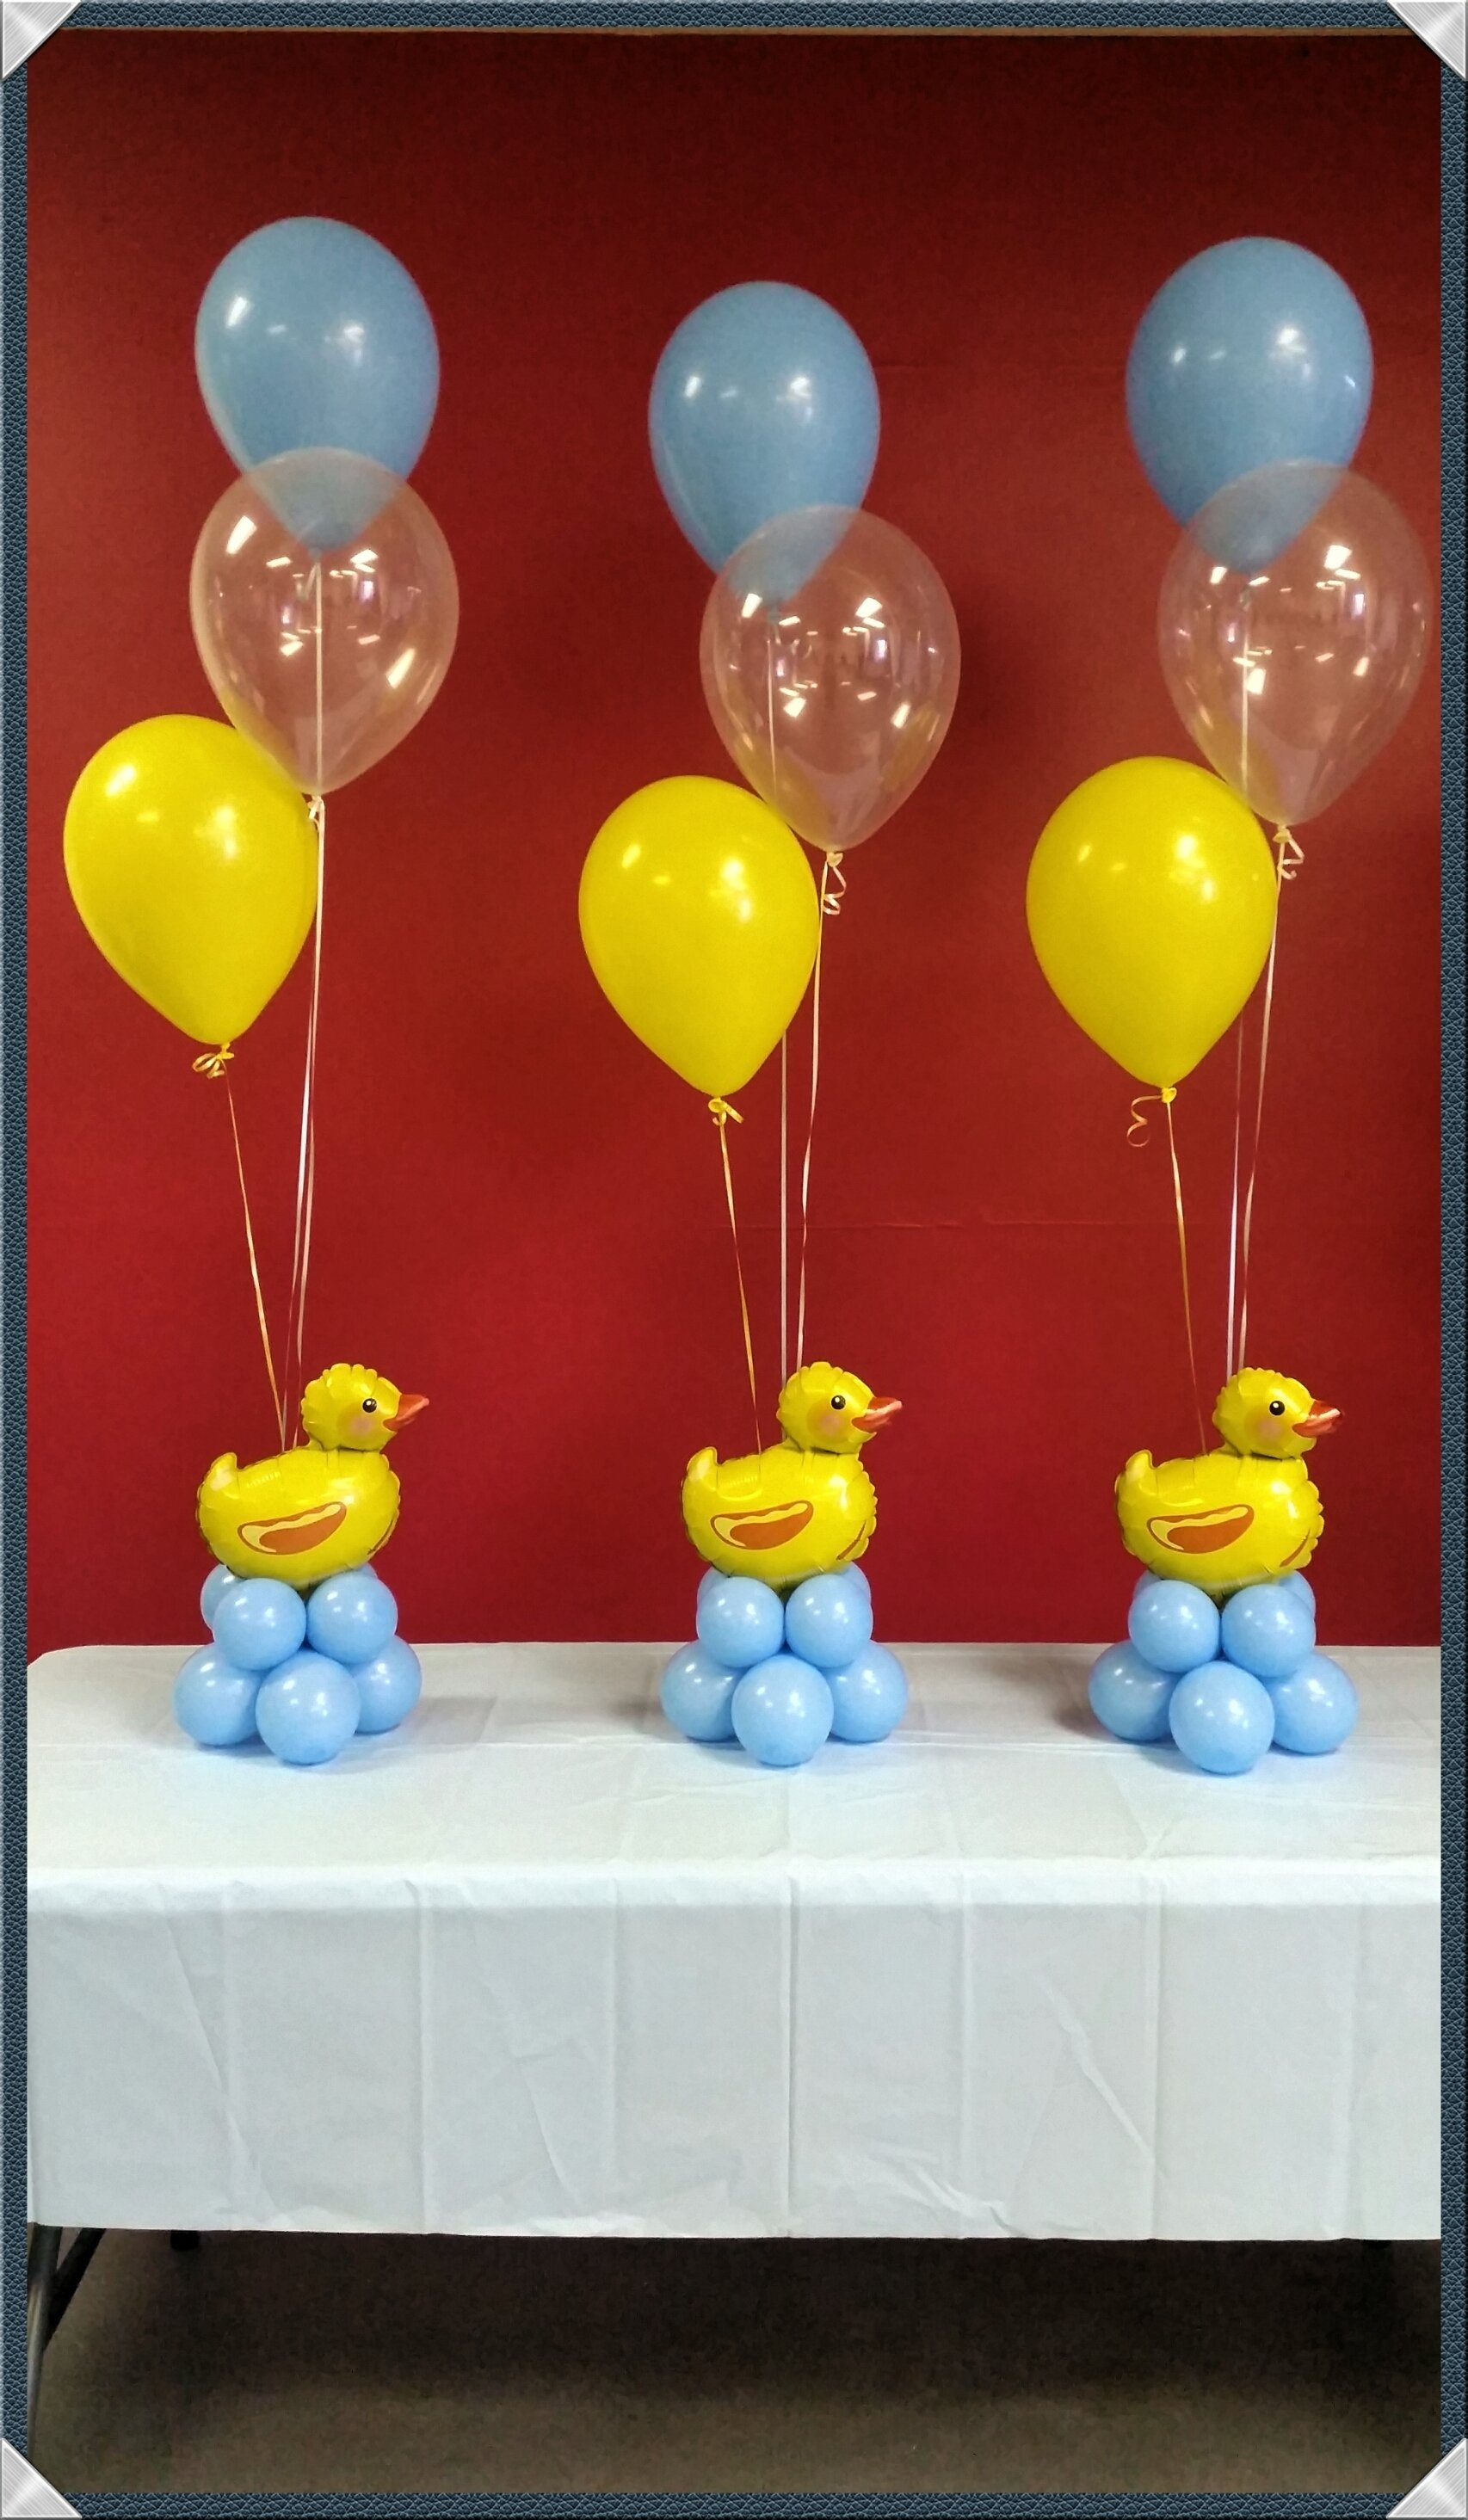 10 Stylish Rubber Ducky Baby Shower Ideas by rosielloons baby shower duckies pinterest babies 1